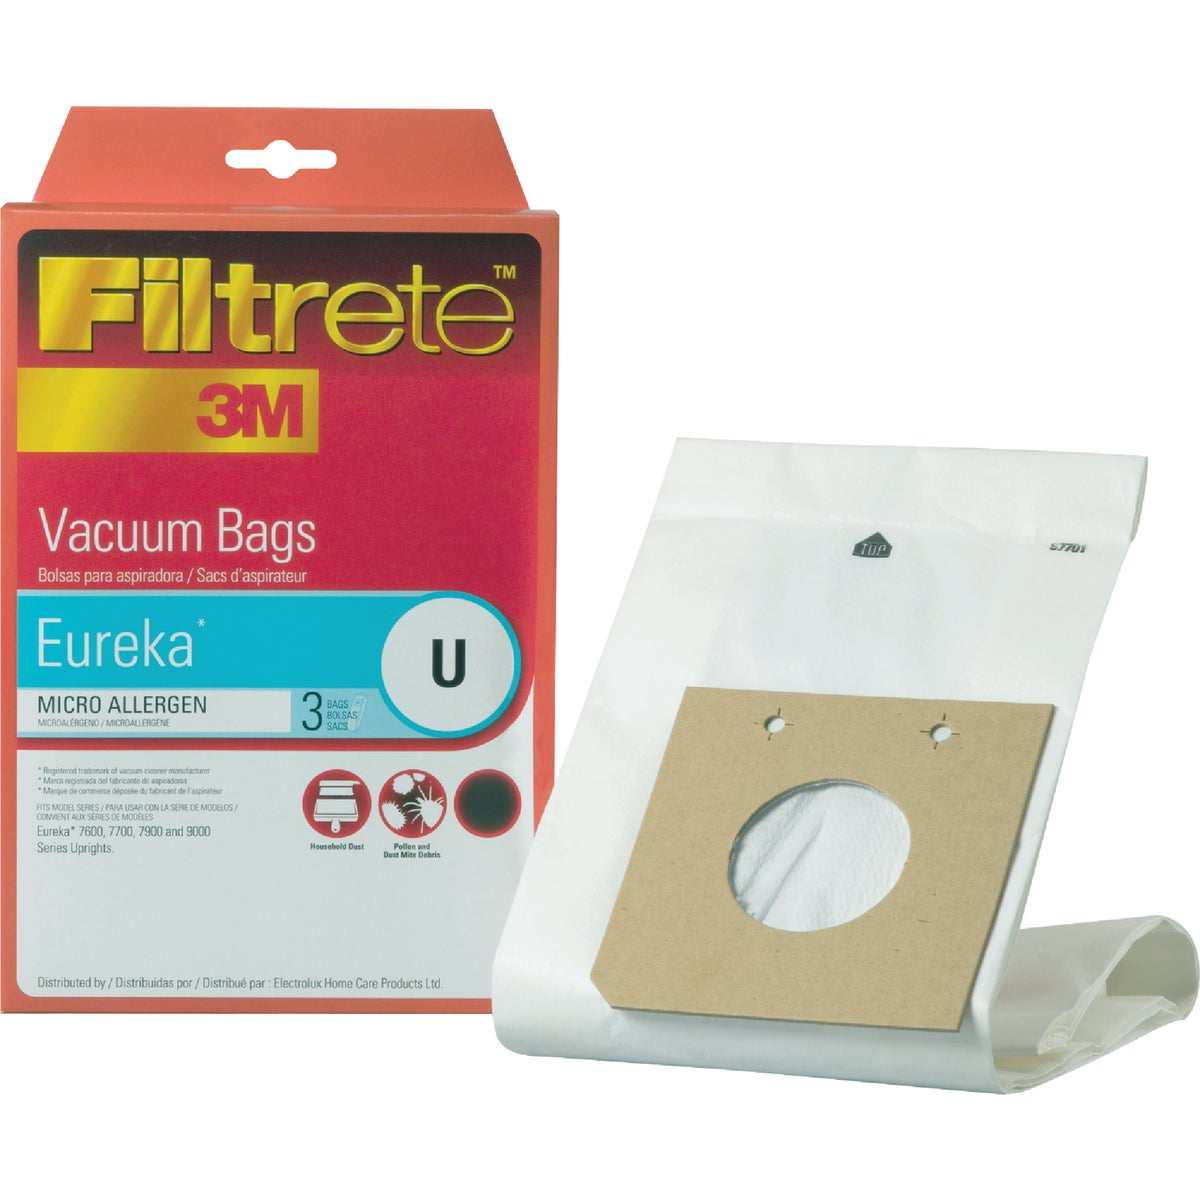 EUREKA U VACUUM BAG - 67701A-6 by Electrolux Home Care